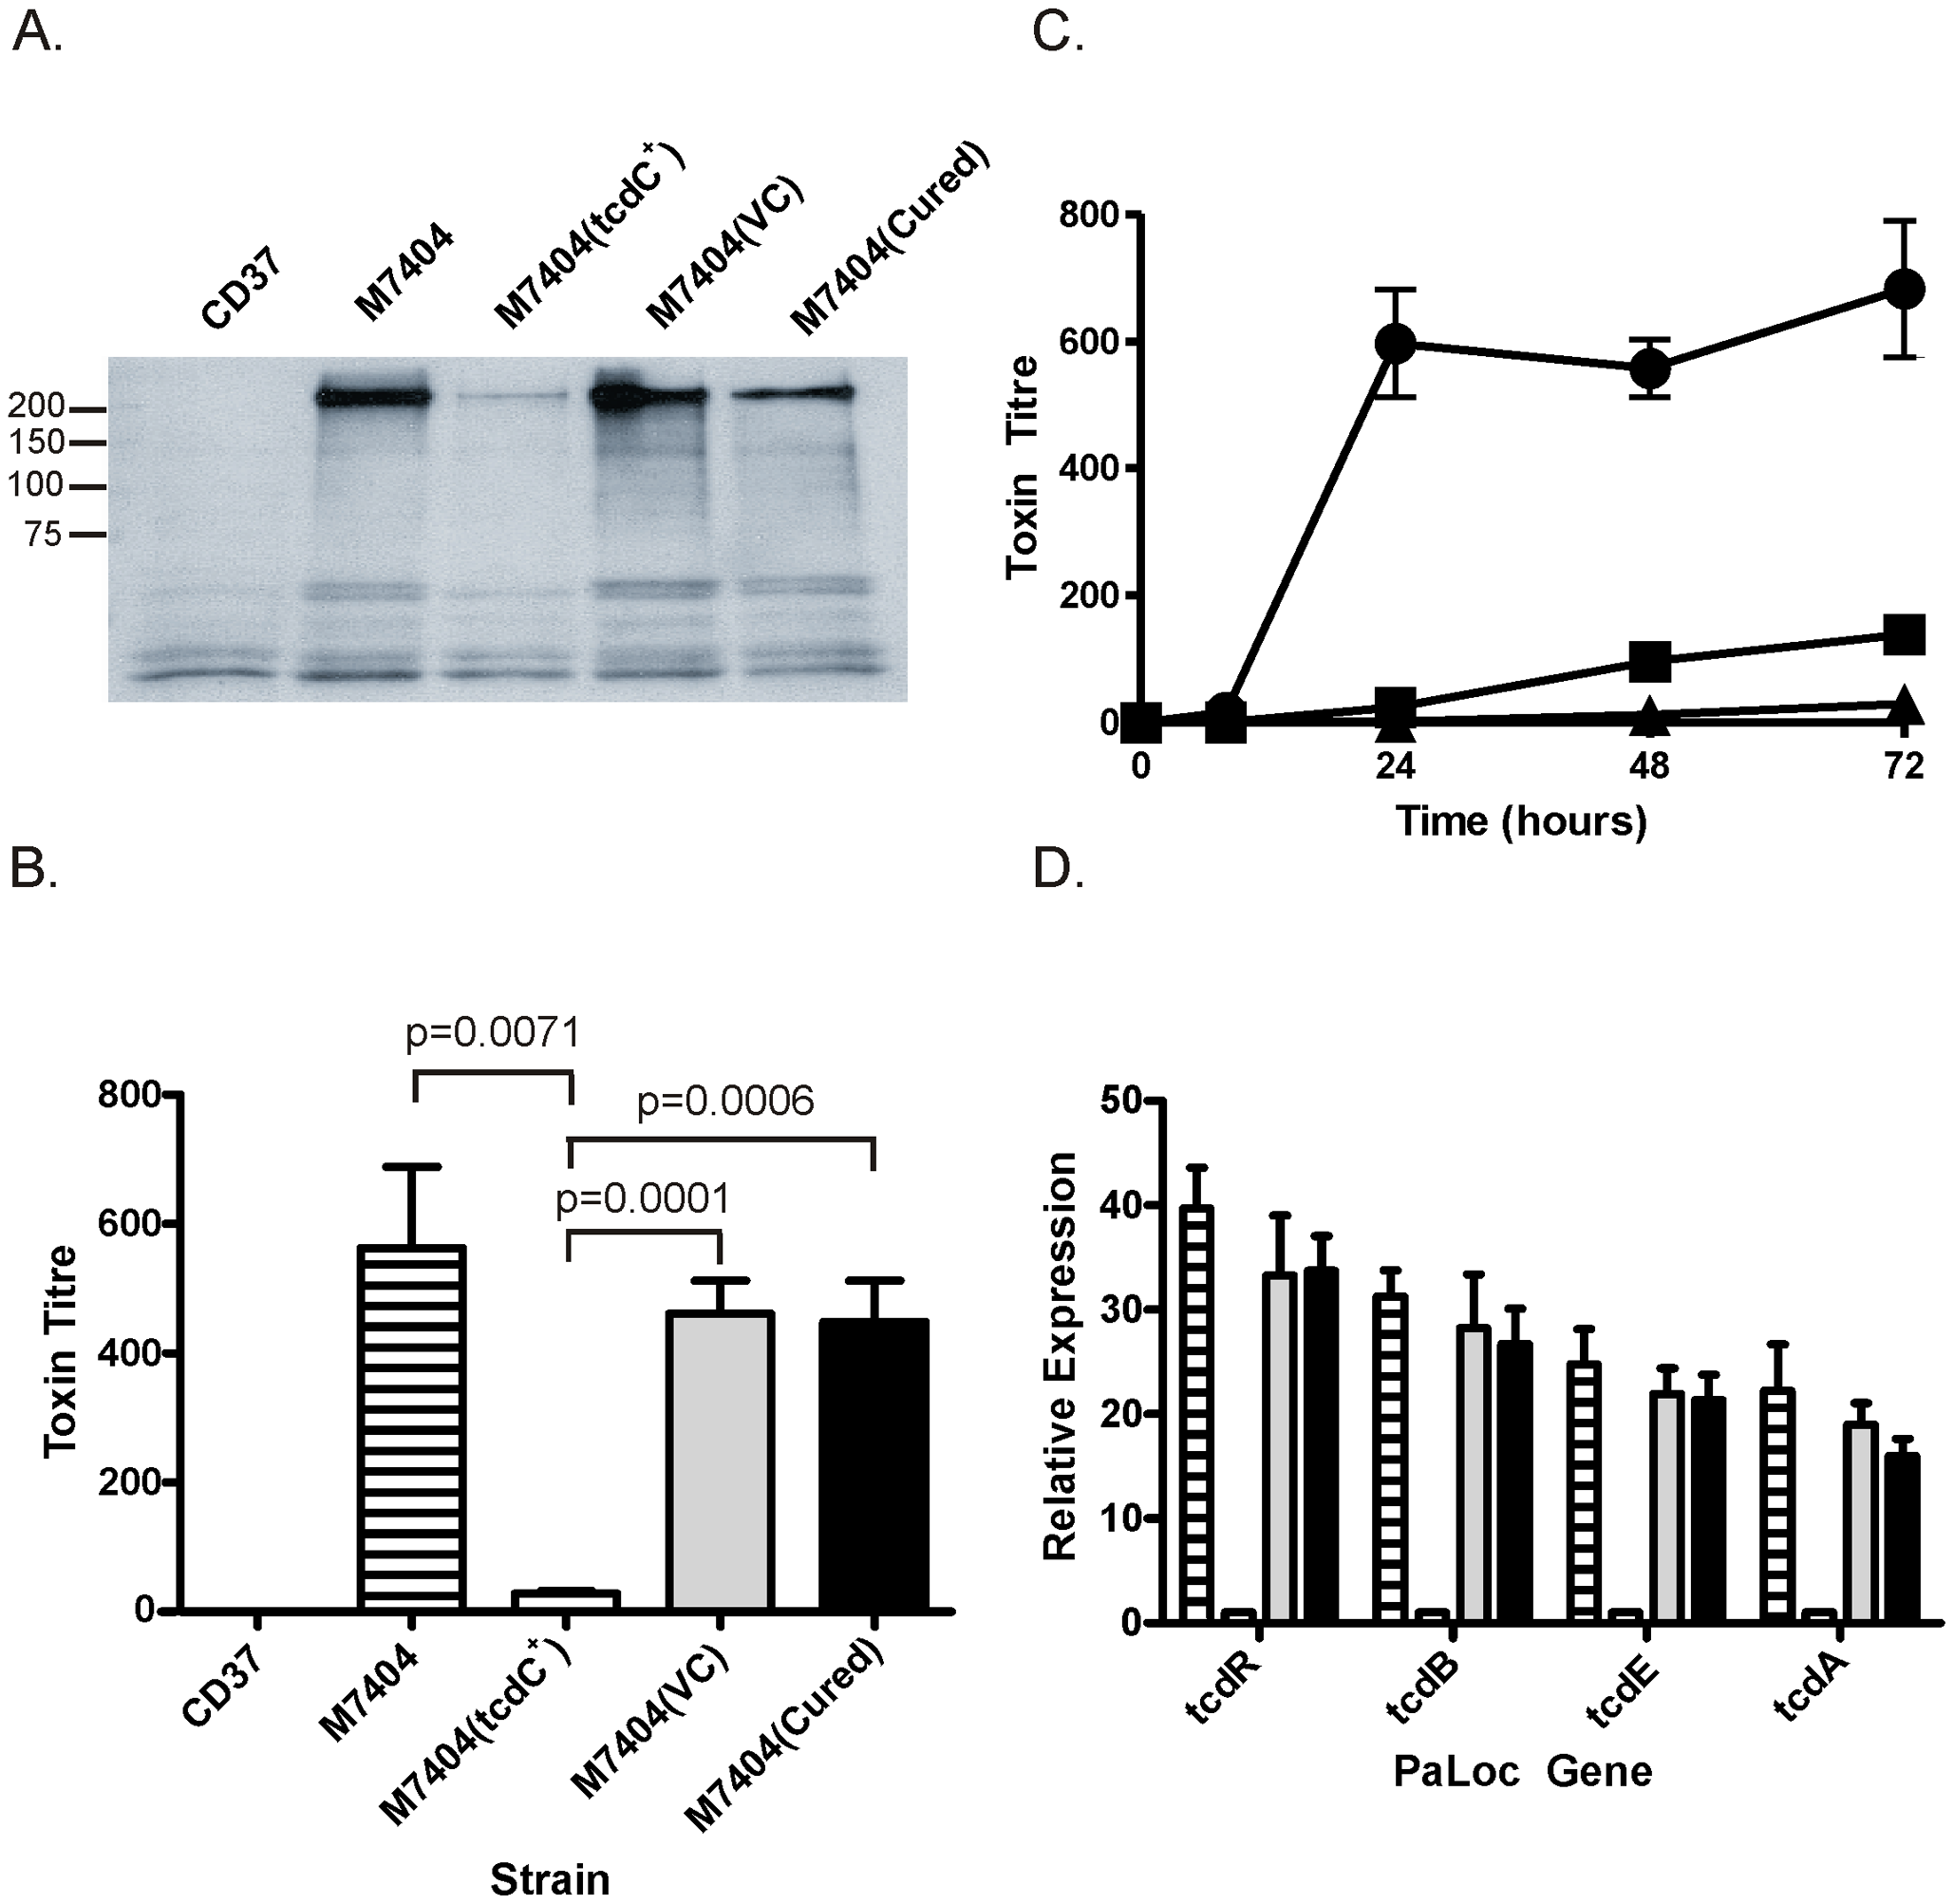 Analysis of the effect of TcdC complementation on toxin production and PaLoc gene expression by <i>C. difficile</i>.